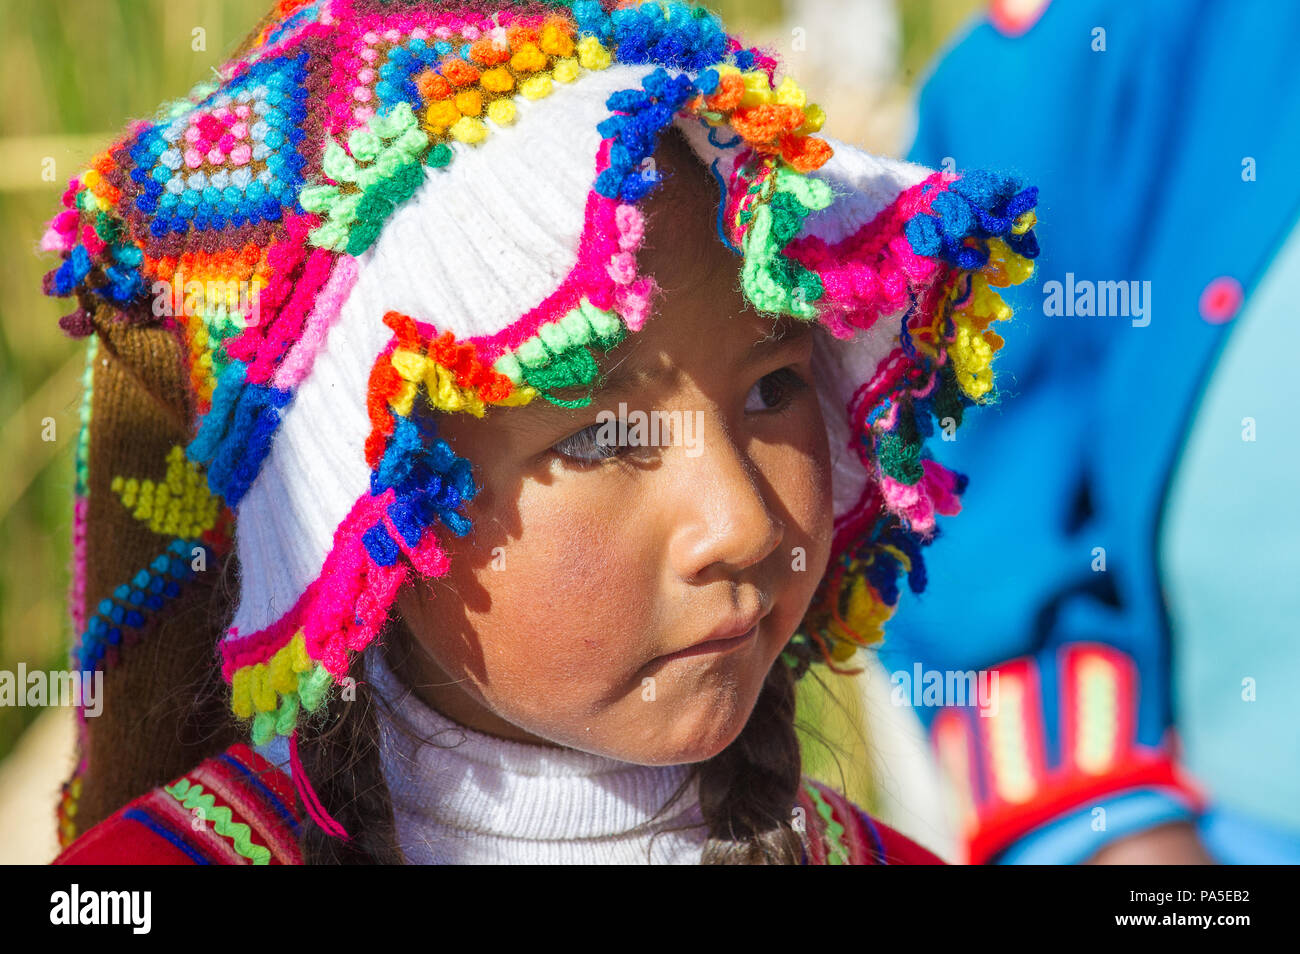 PUNO, PERU - NOVEMBER 7, 2010: Unidentified Uros girl in traditional clothes on the  Uros Islands, Peru, Nov 7, 2010. Uros Islands iclude 42 floating  - Stock Image